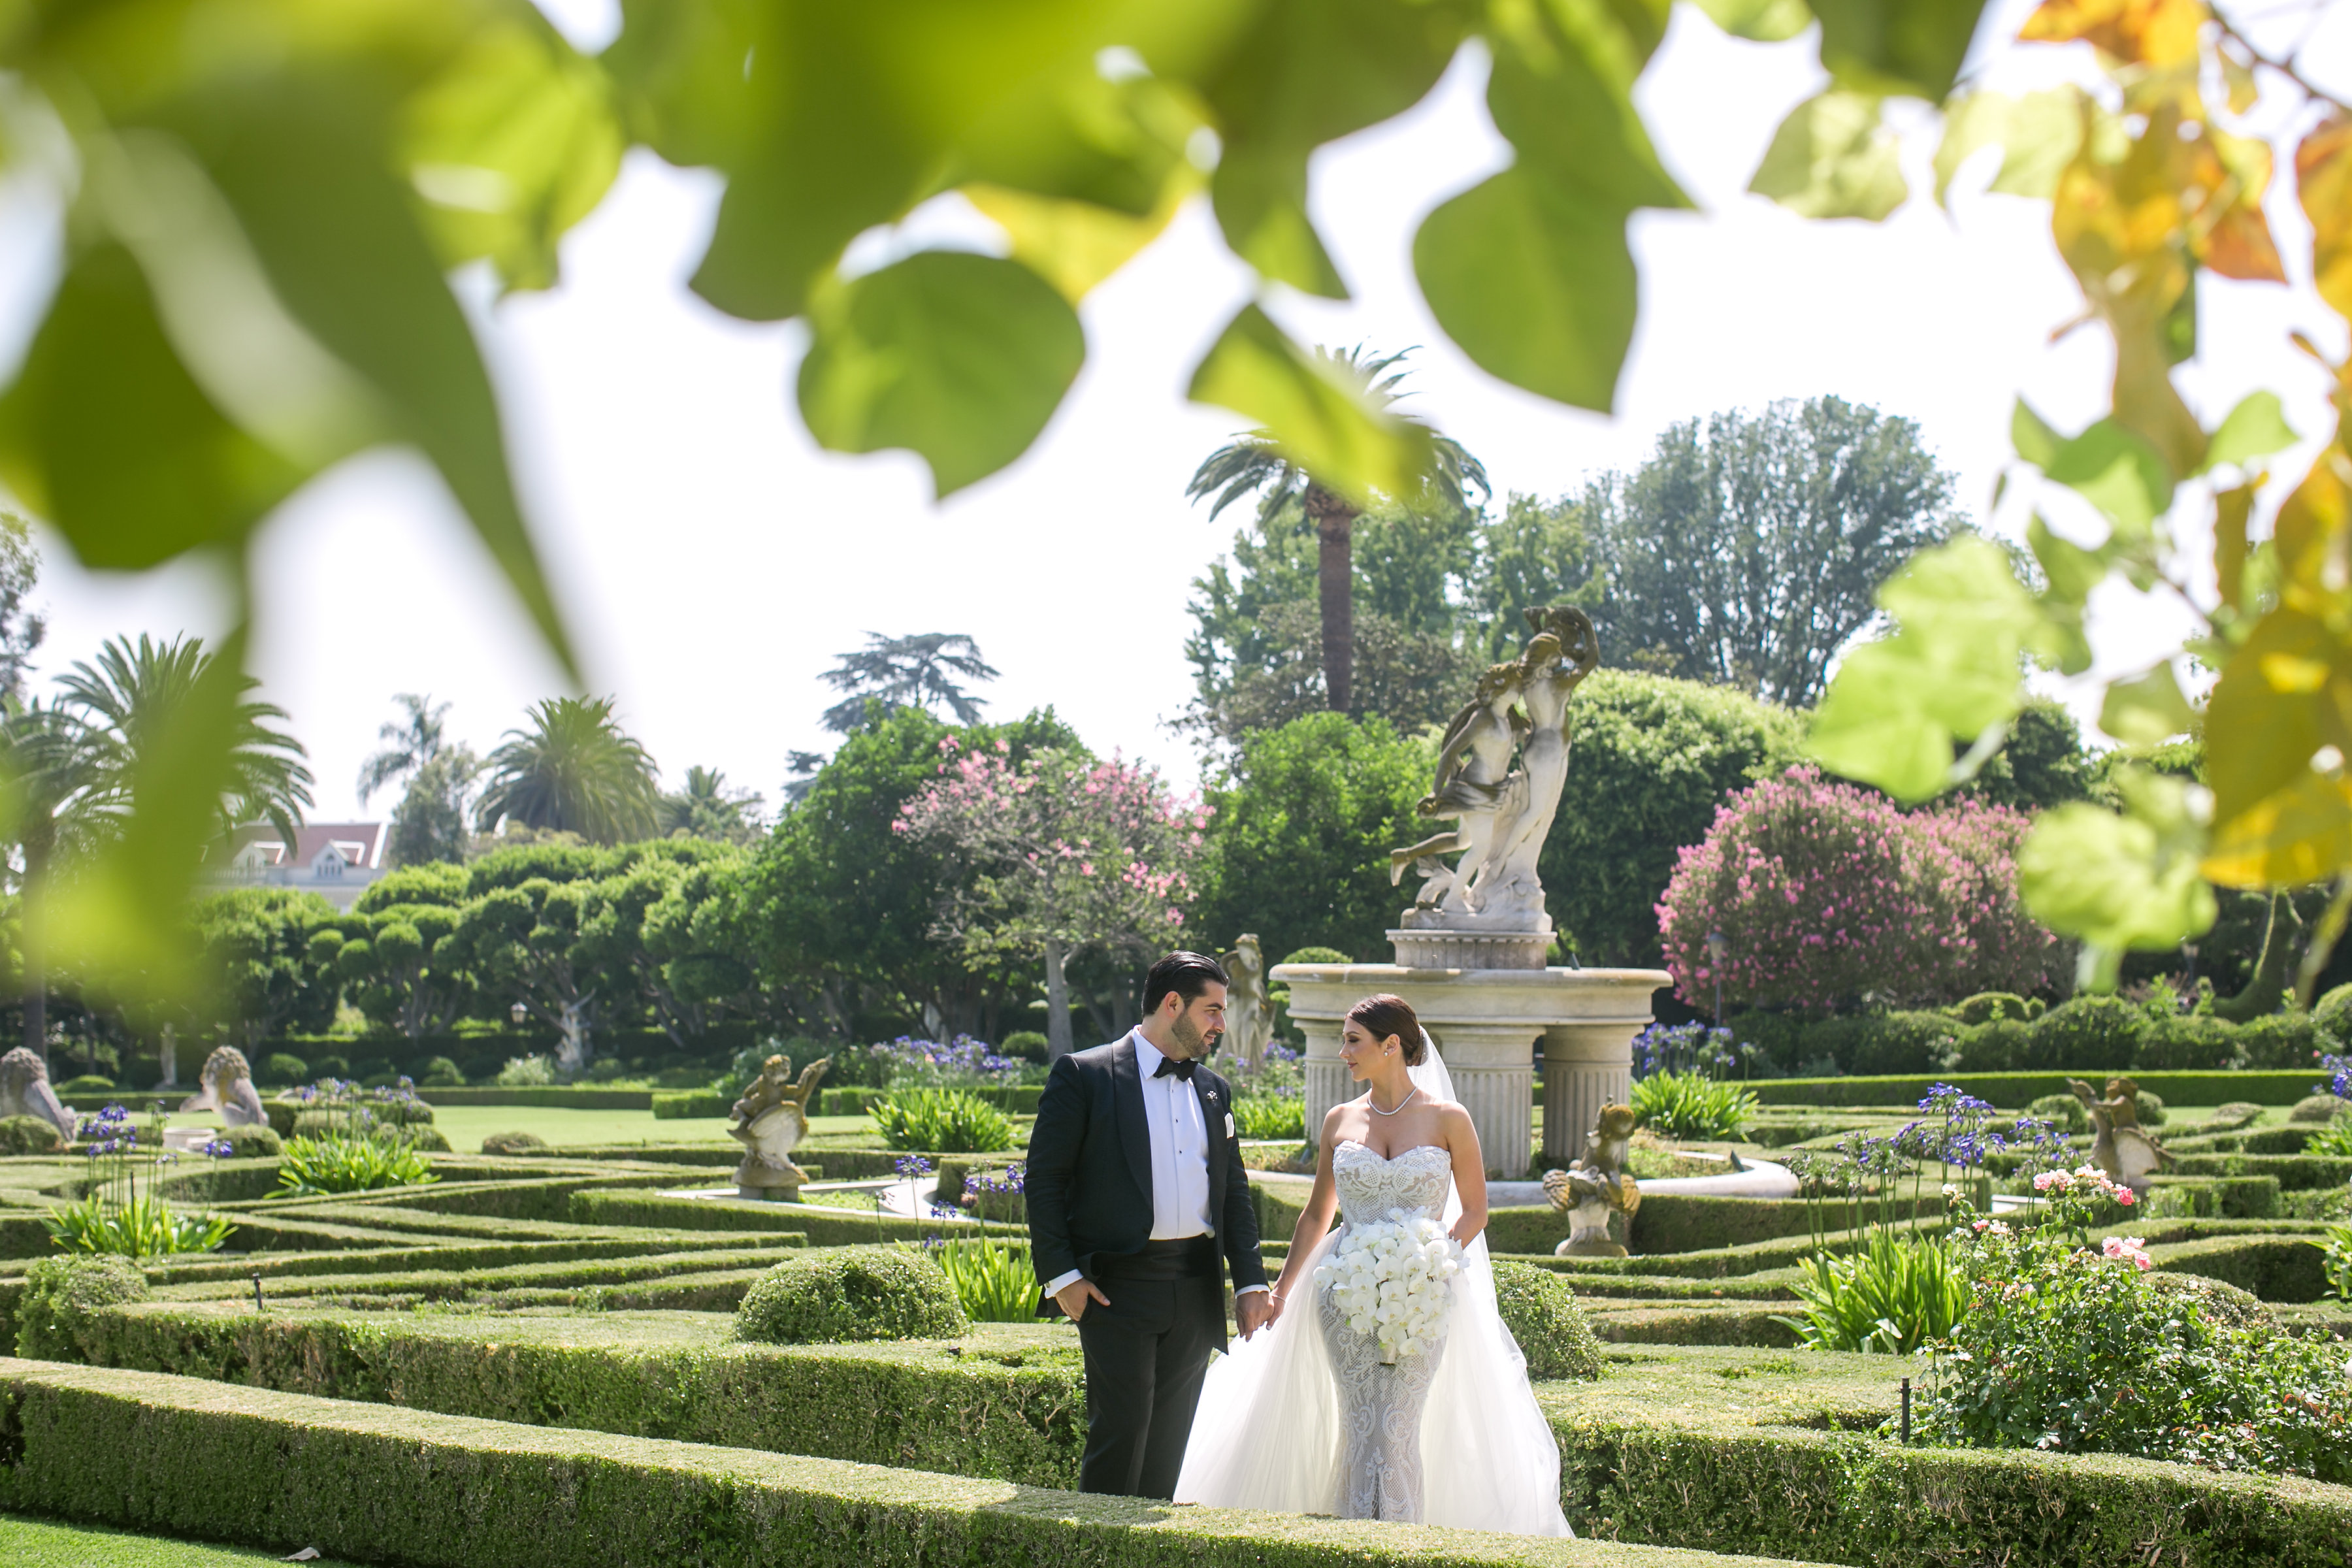 garden wedding ideas fancy luxury wedding portraits in garden venue setting